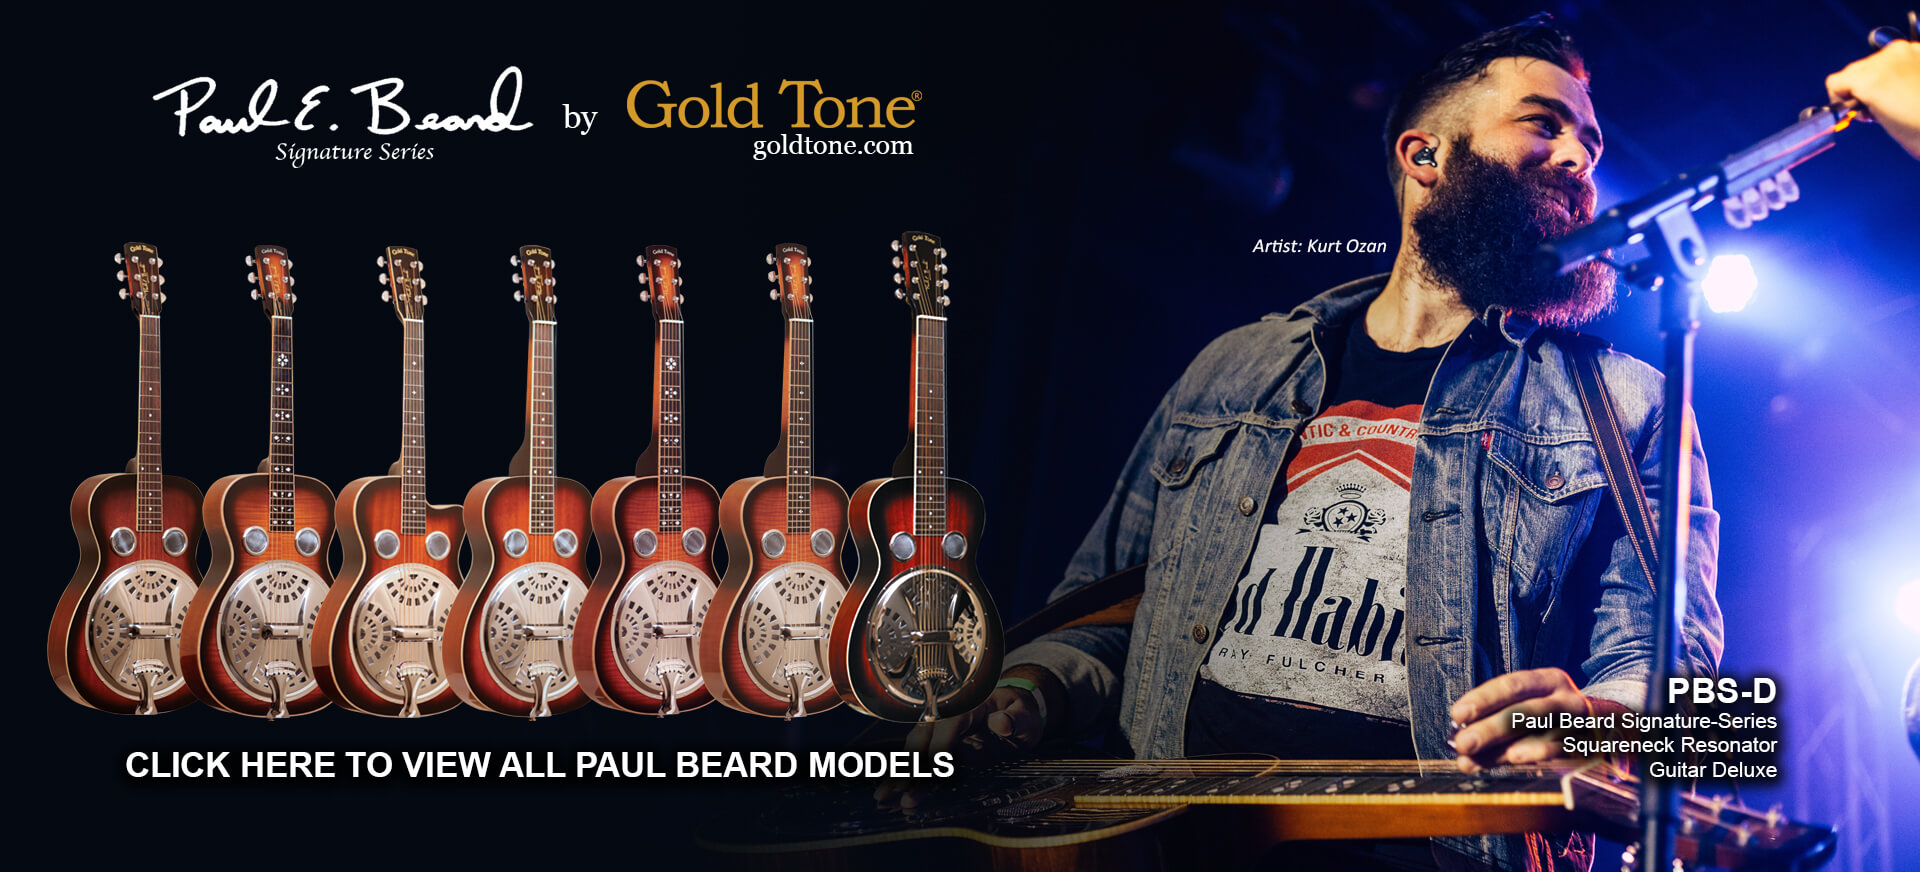 Paul Beard Signature Series Round and Square Neck Guitars. Click here to view all Paul Beard models.